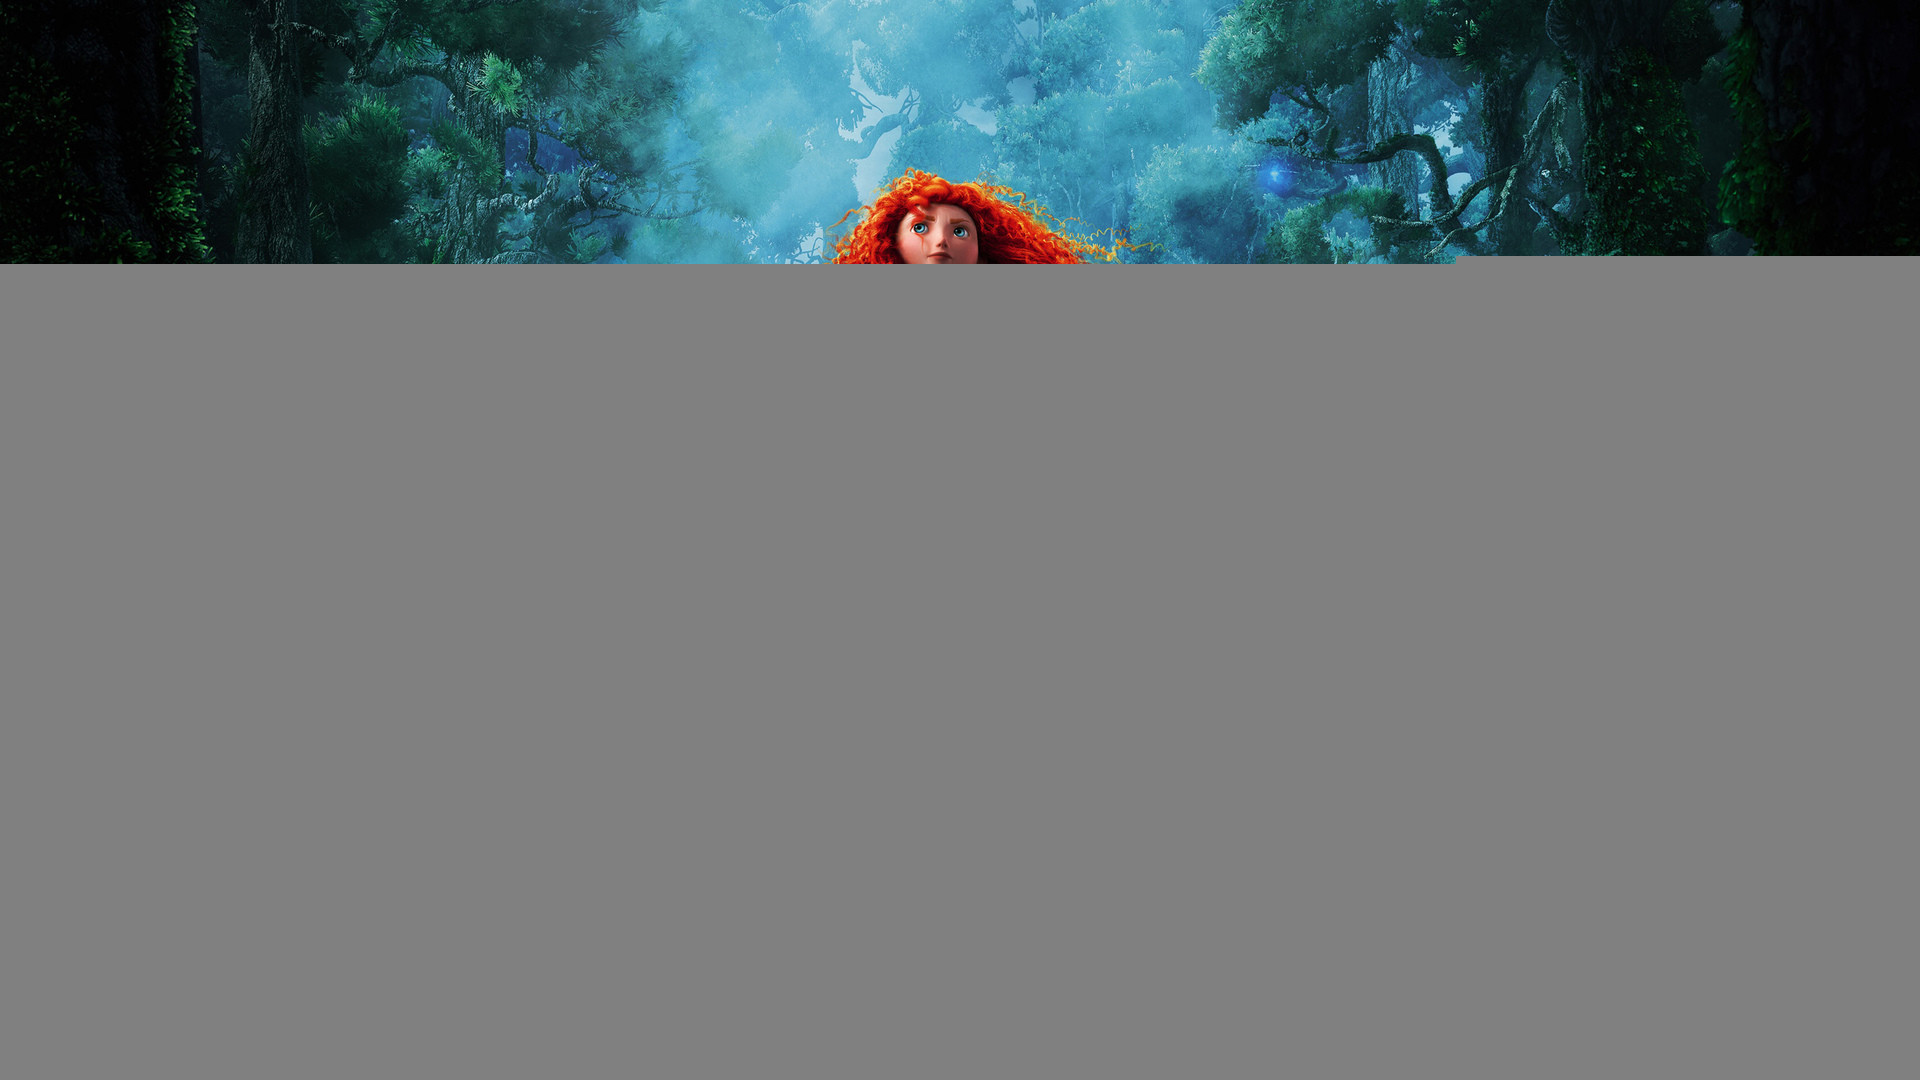 1920x1080 Brave Princess Merida Wallpaper Picture For iPhone Blackberry iPad